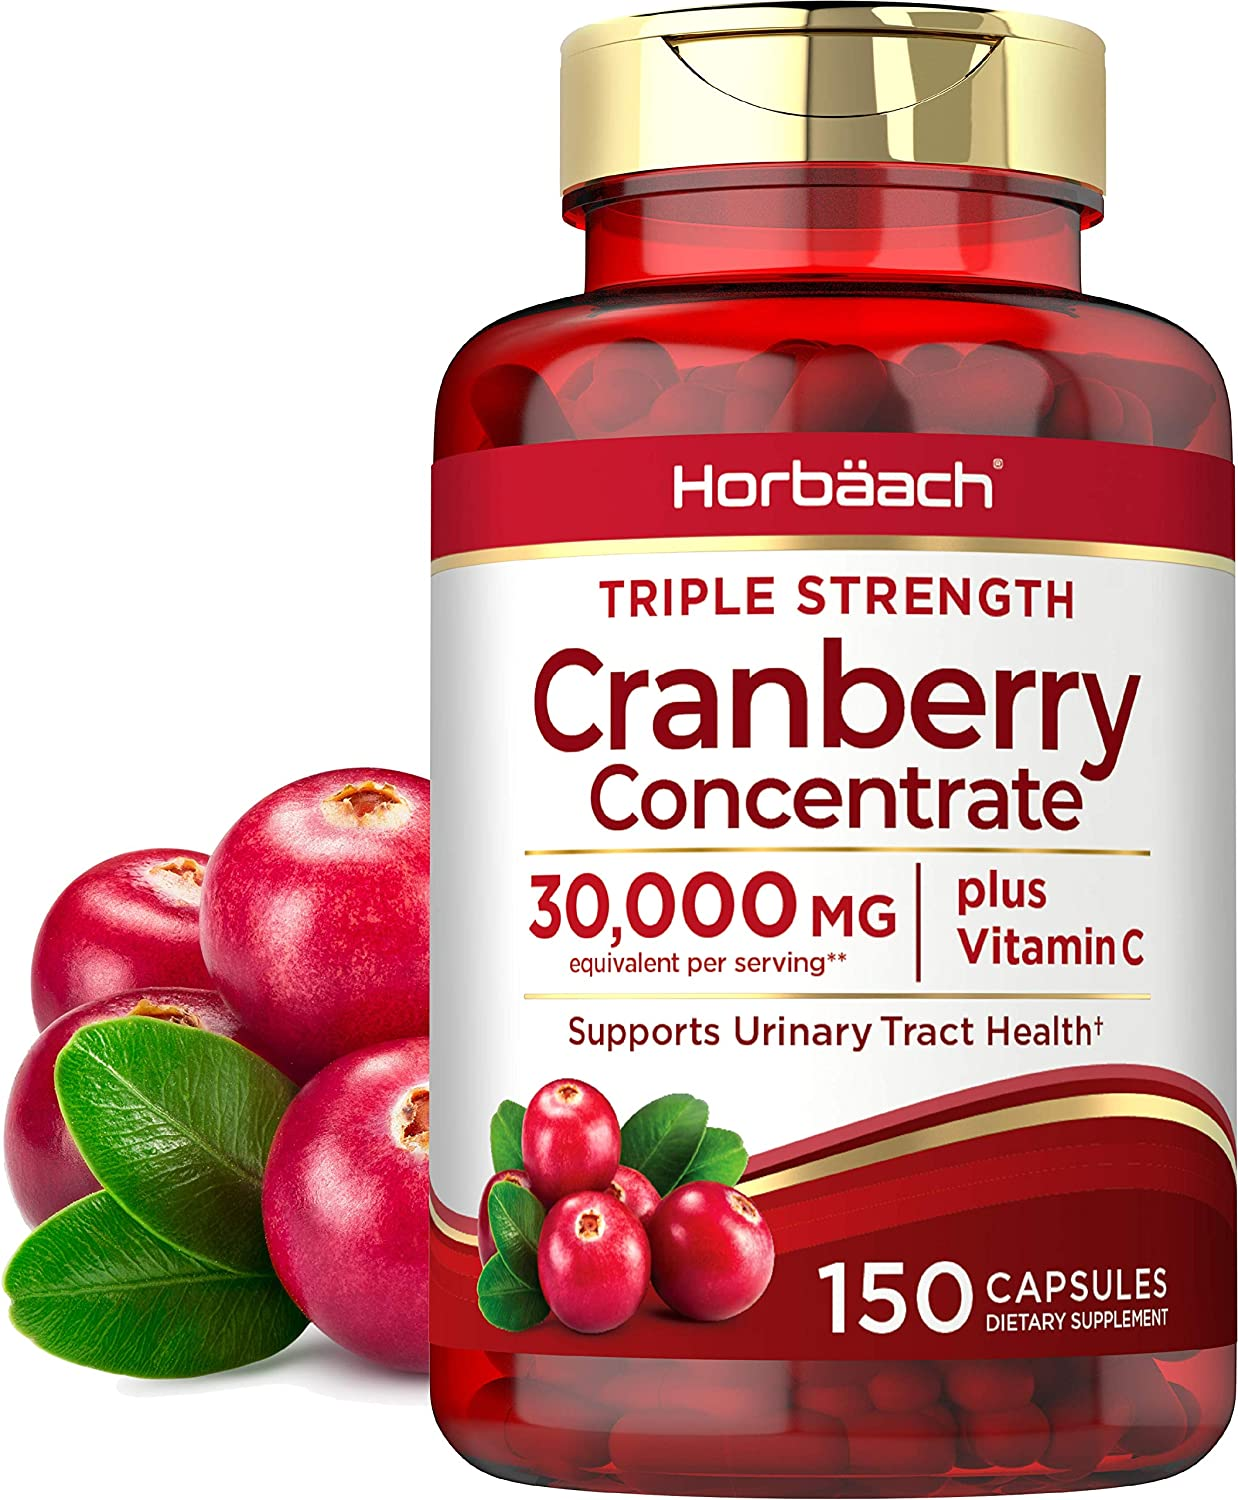 Horbaach Cranberry (30,000 mg) + Vitamin C 150 Capsules | Triple Strength Ultimate Potency | Non-GMO, Gluten Free Cranberry Pills Supplement from Concentrate Extract: Health & Personal Care